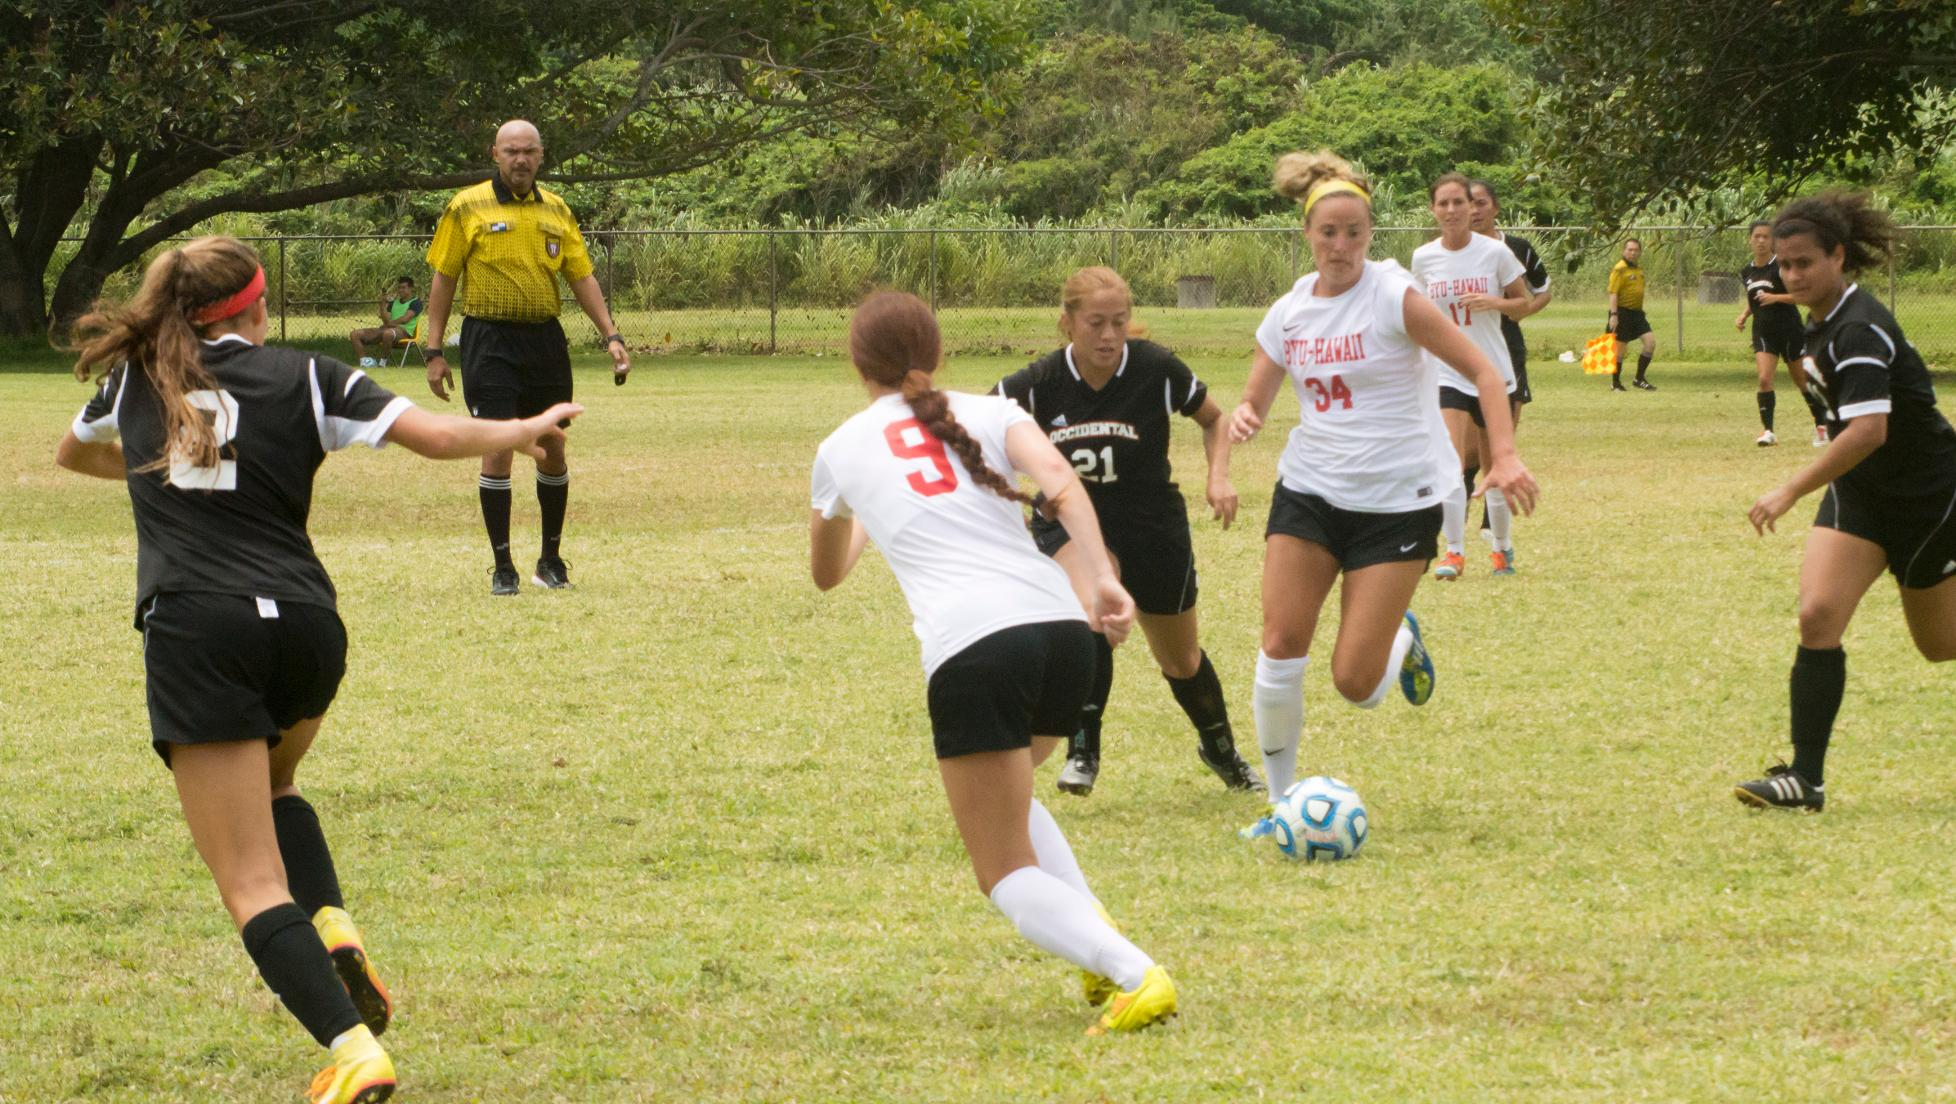 Seasiders meet HPU in non-conference match